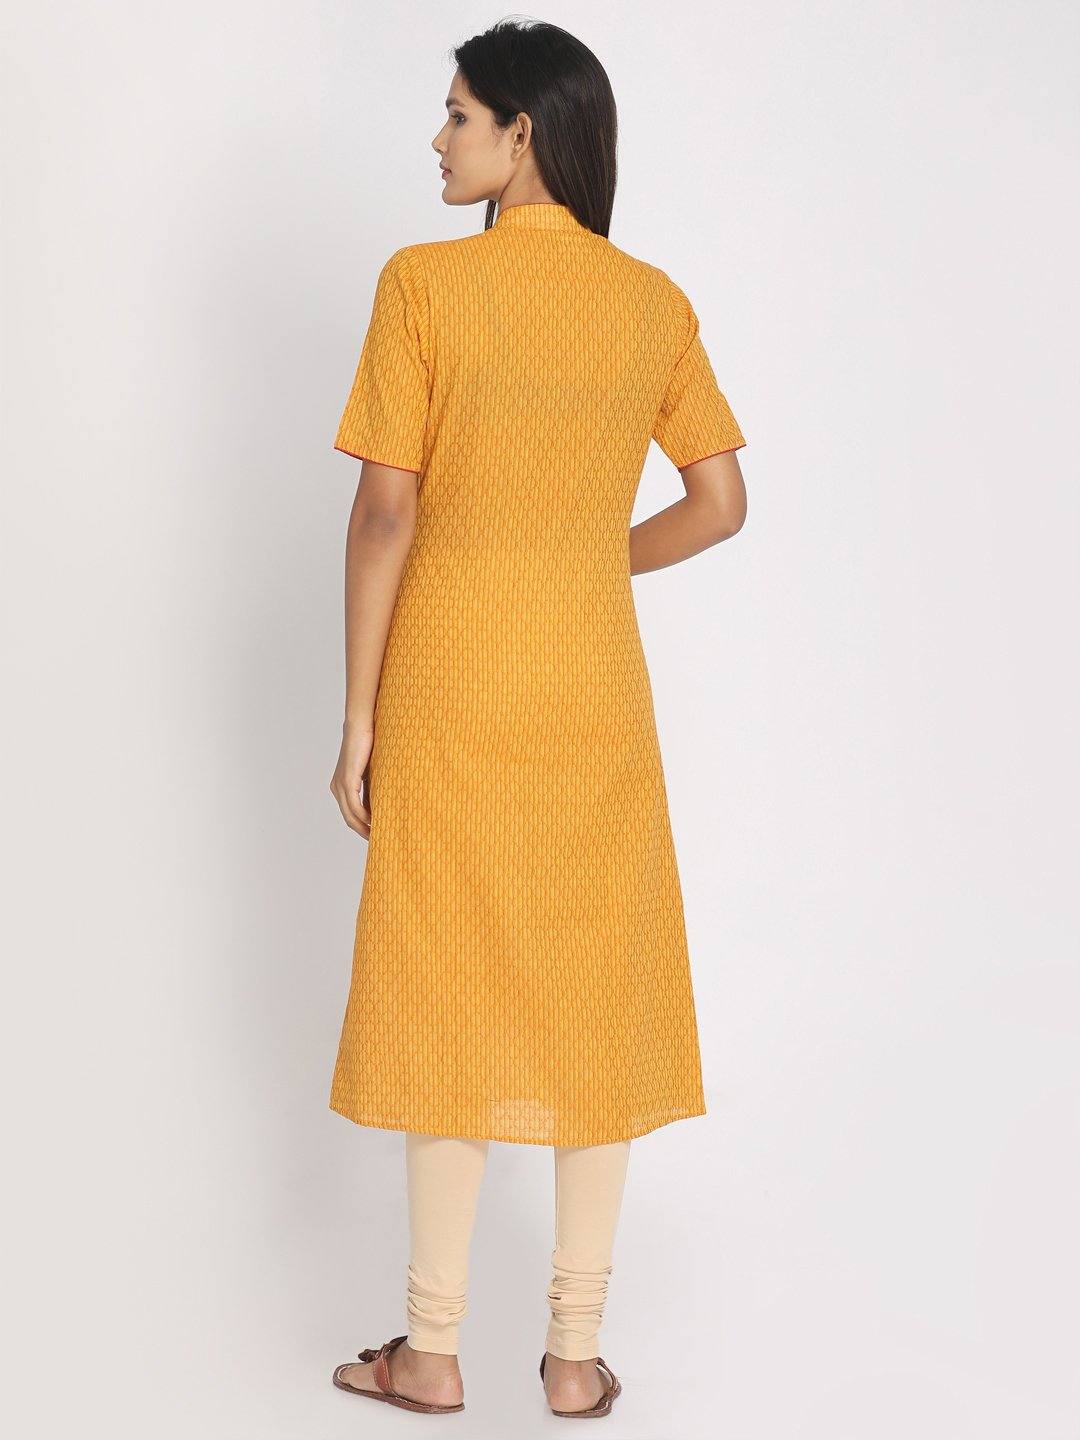 Hand Block Printed Yellow Angarakha Style Kurta With Mask